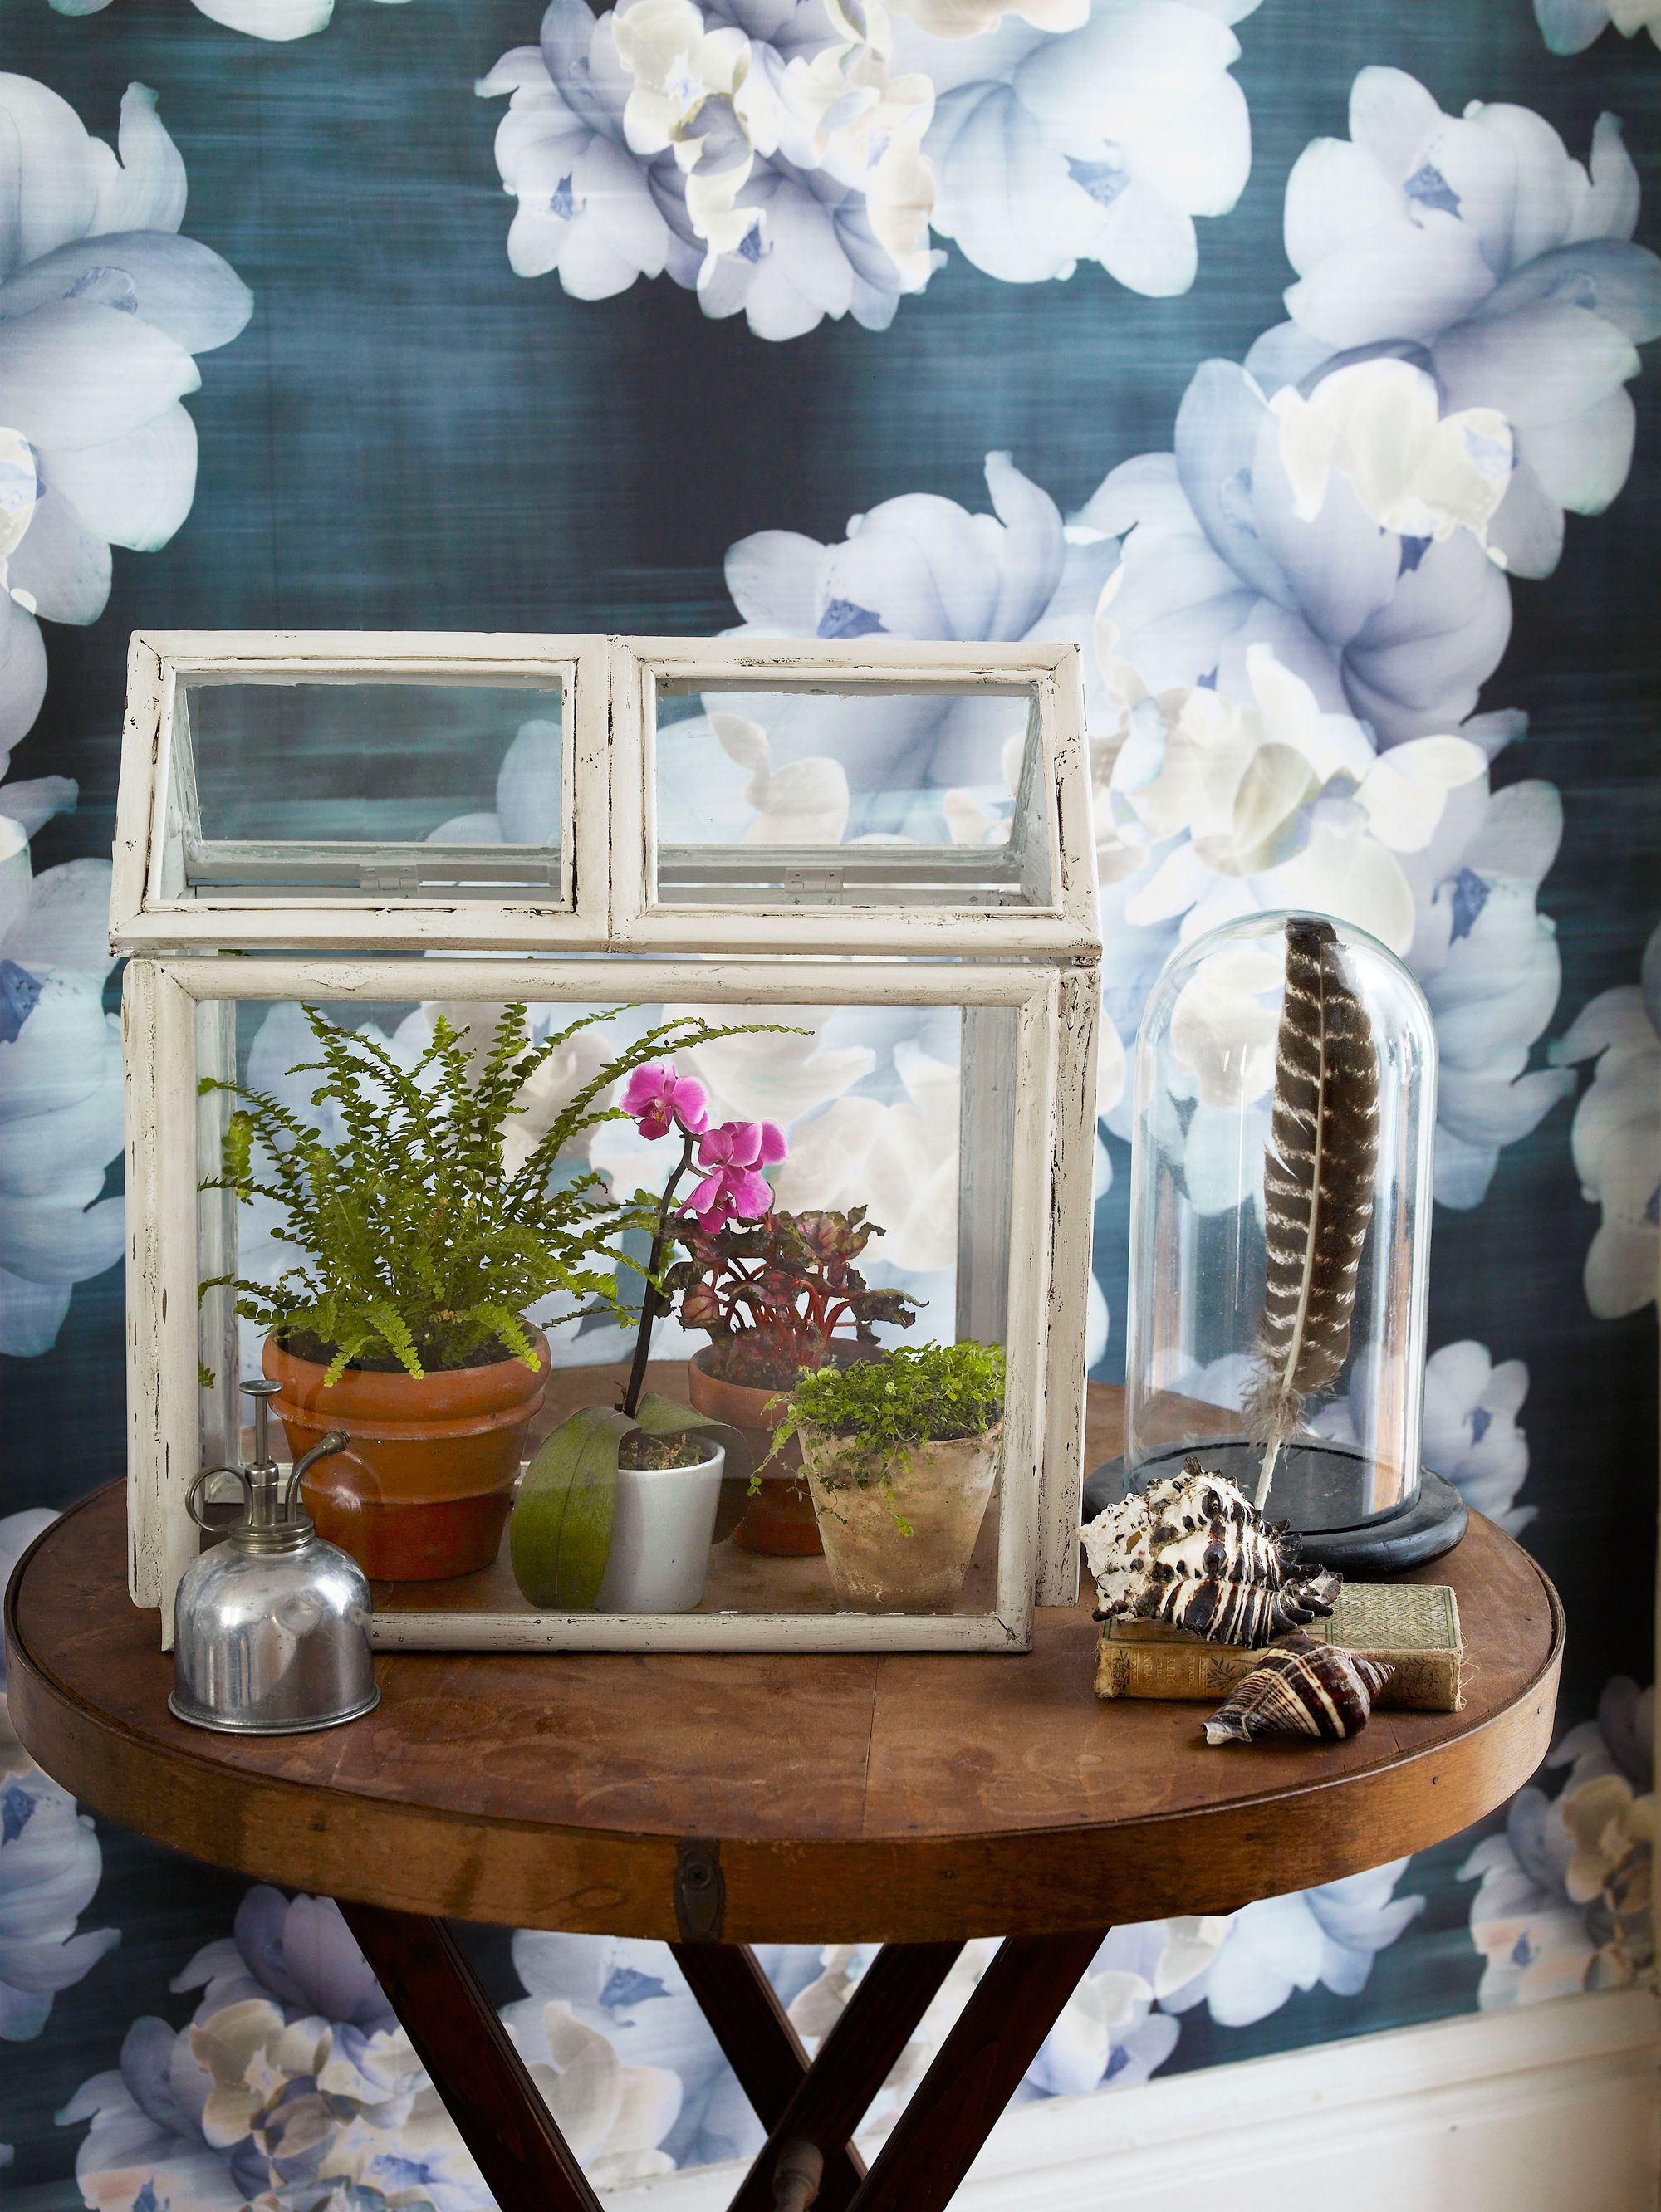 Old window frames easy craft ideas how to make a diy terrarium using old picture frames jeuxipadfo Gallery